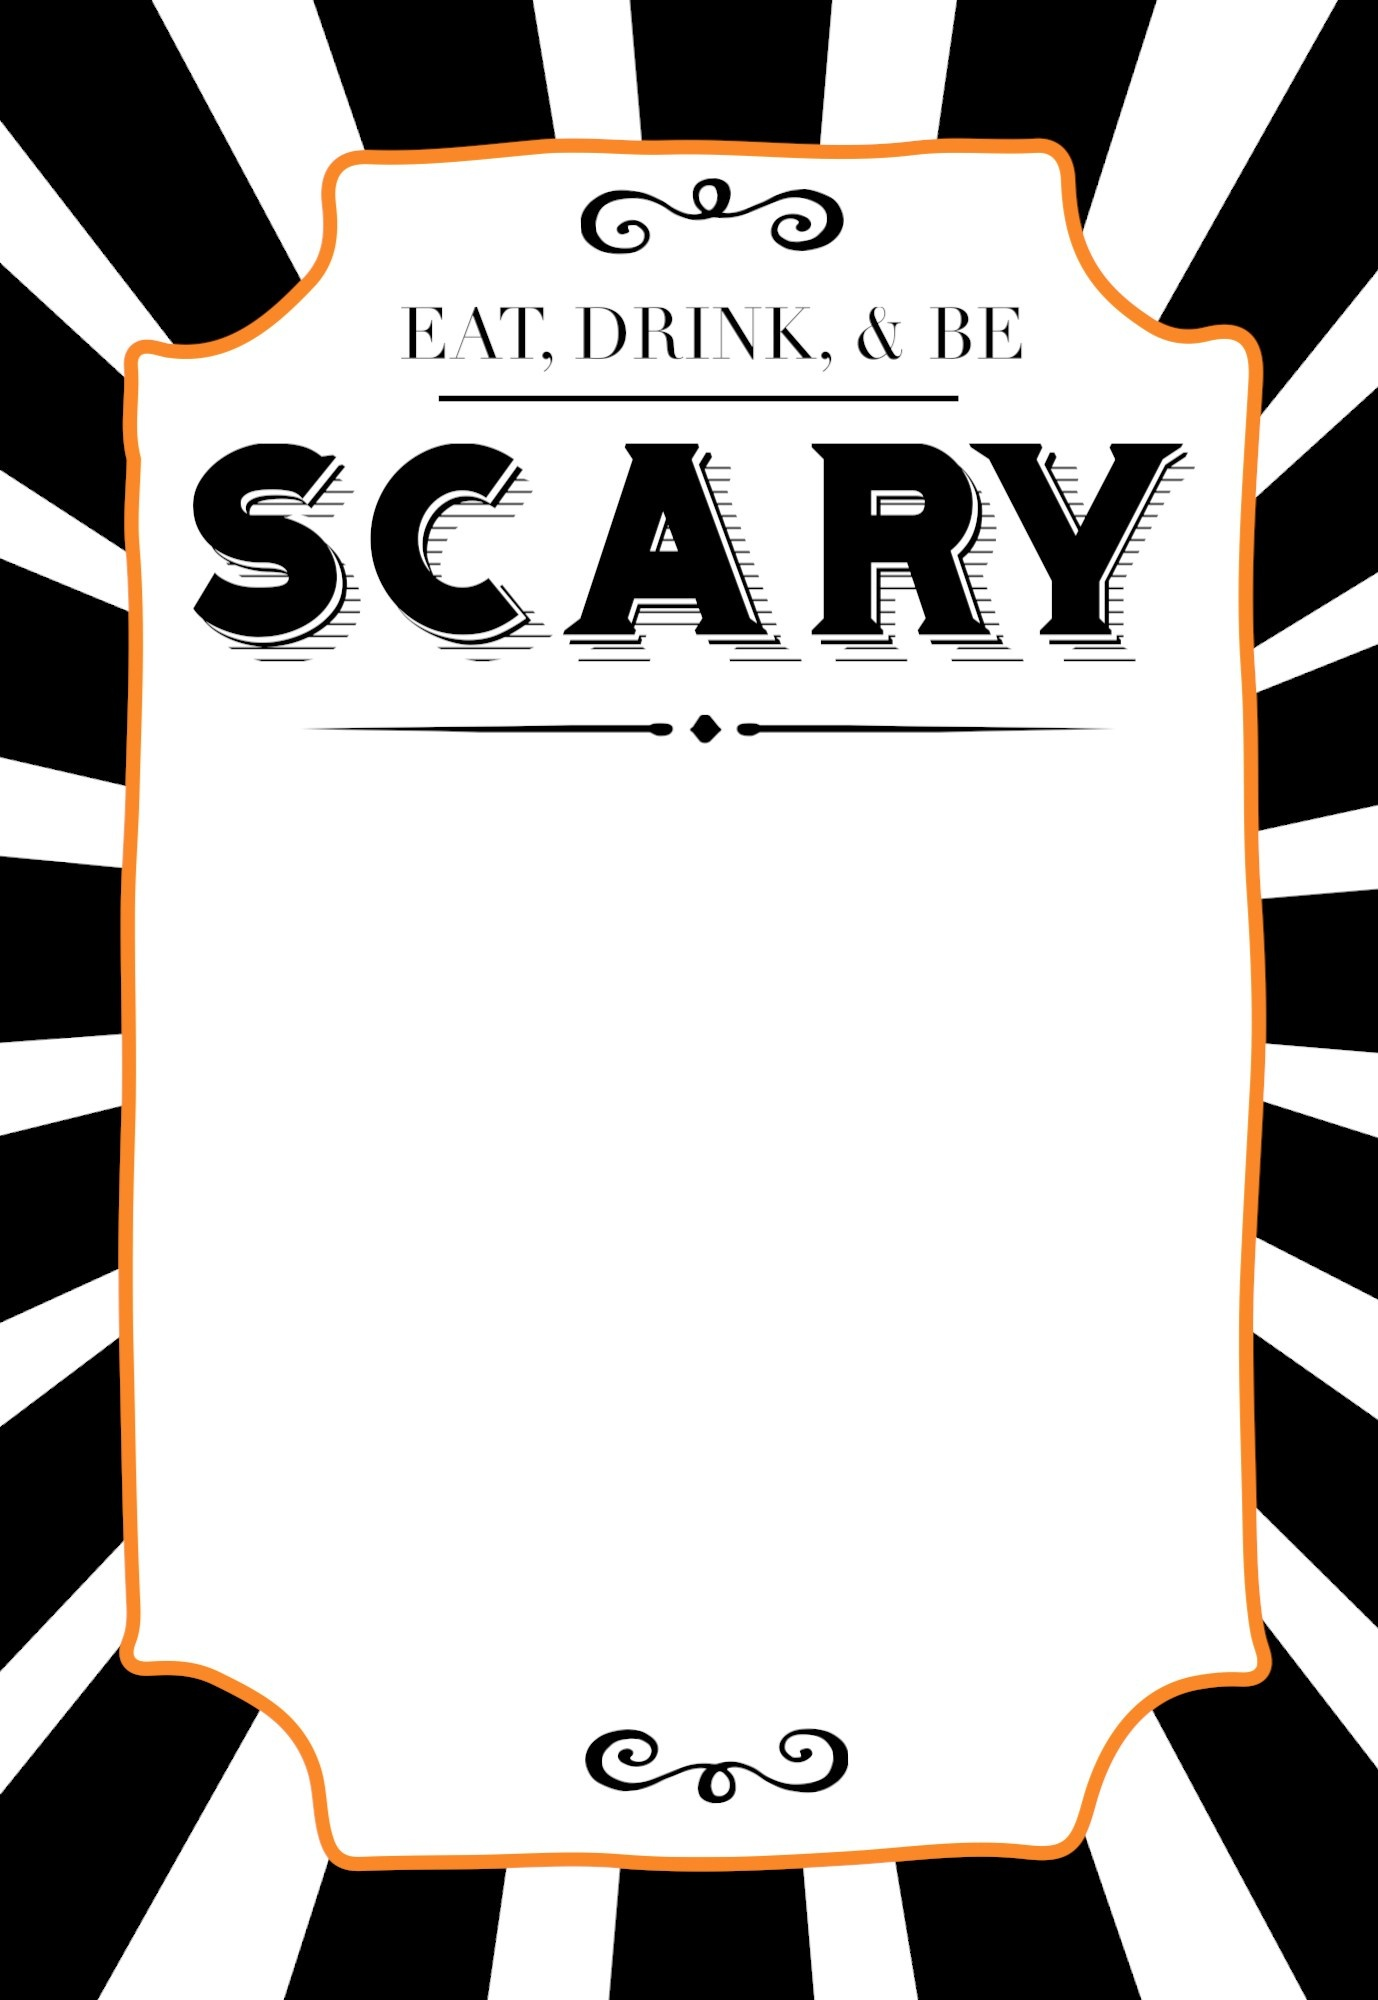 Halloween Invitations Free Printable Template - Paper Trail Design - Free Printable Halloween Invitations For Adults